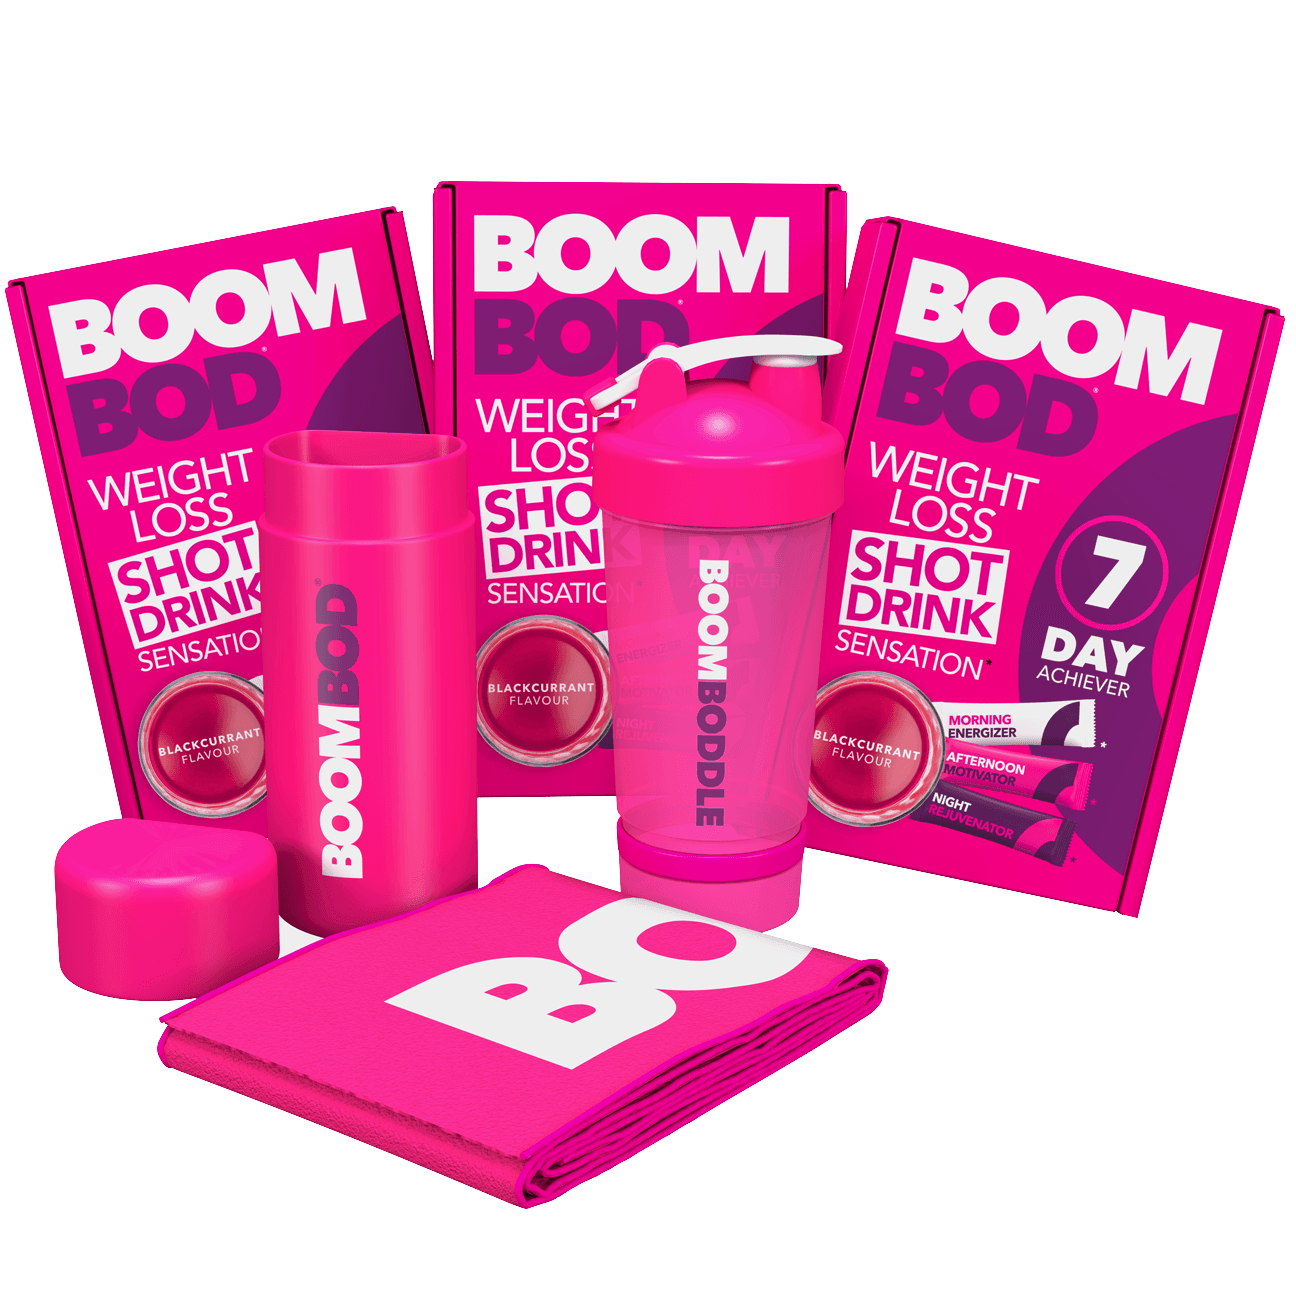 Boombundle | 3 X 7 Day Achiever | Pink Workout Towel | Pink 20oz Shaker Bottle | Blackcurrant